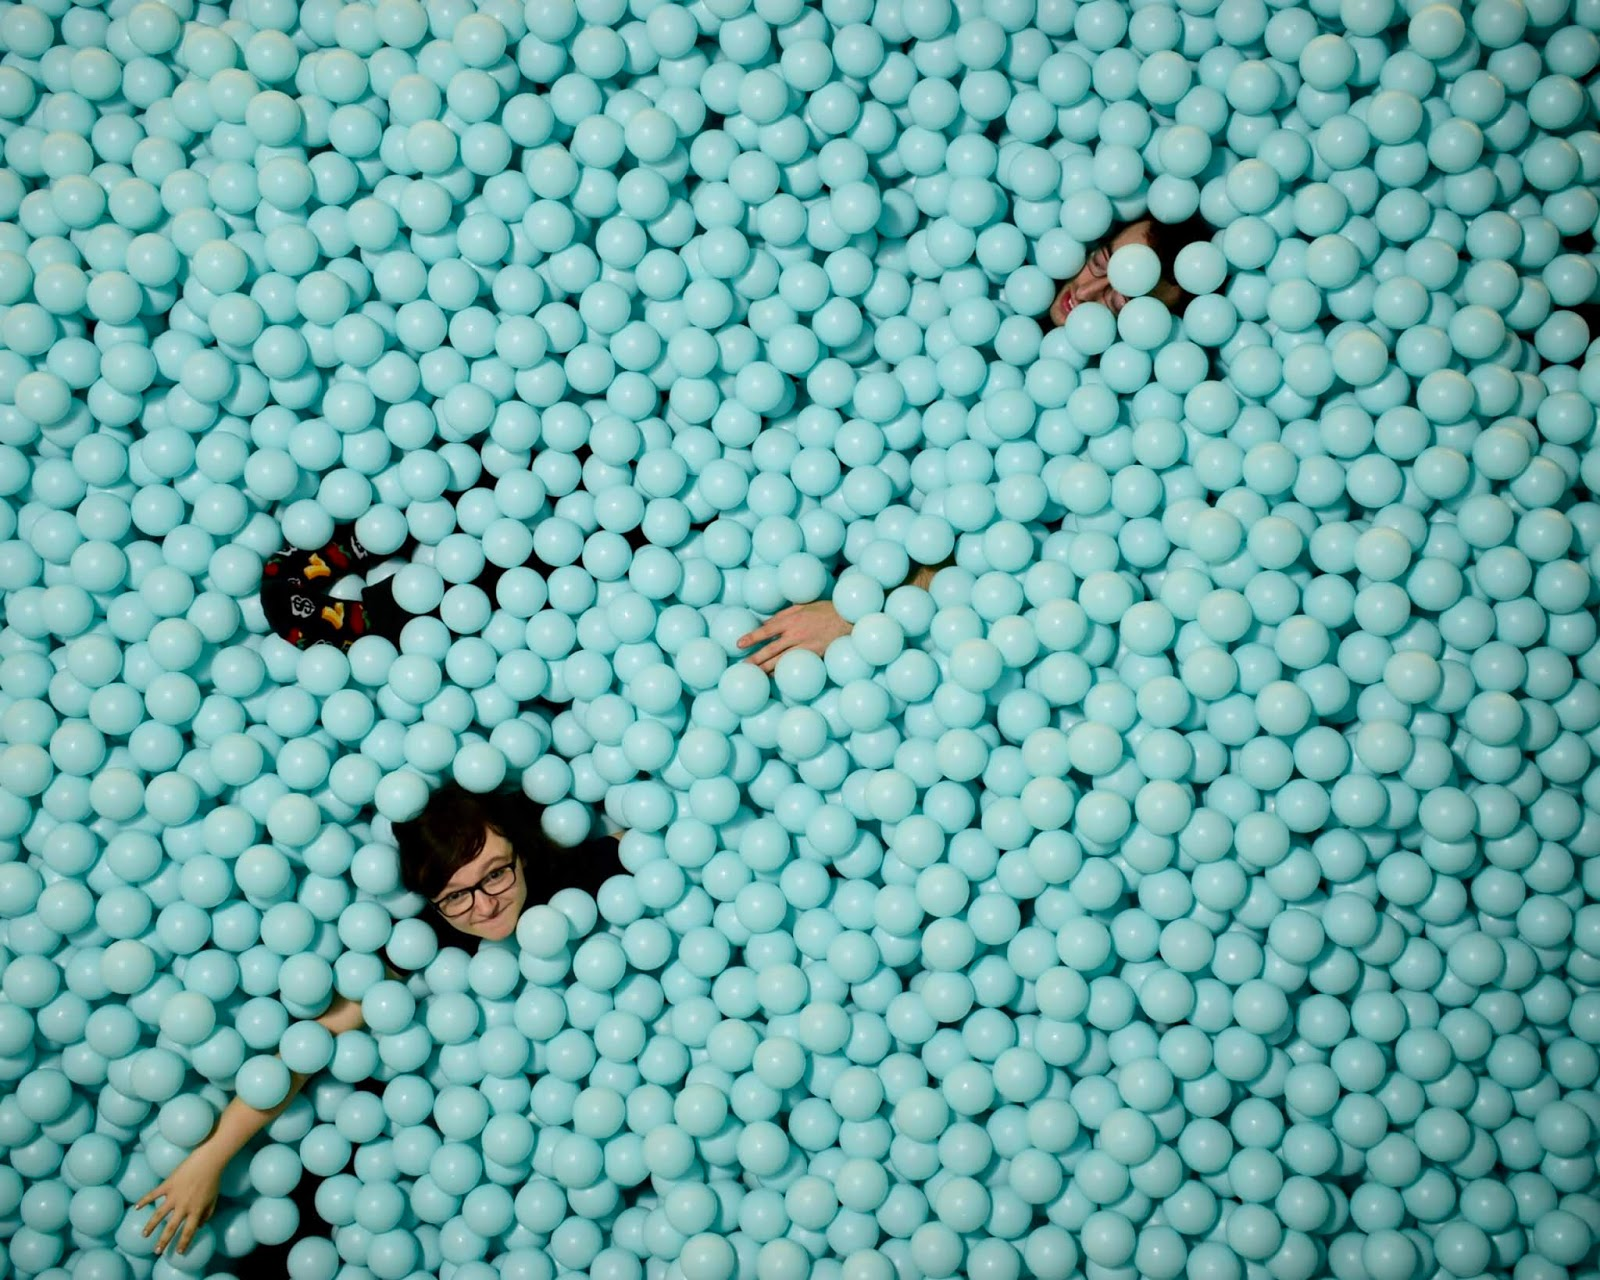 Amber Kirk-Ford in a ball pit